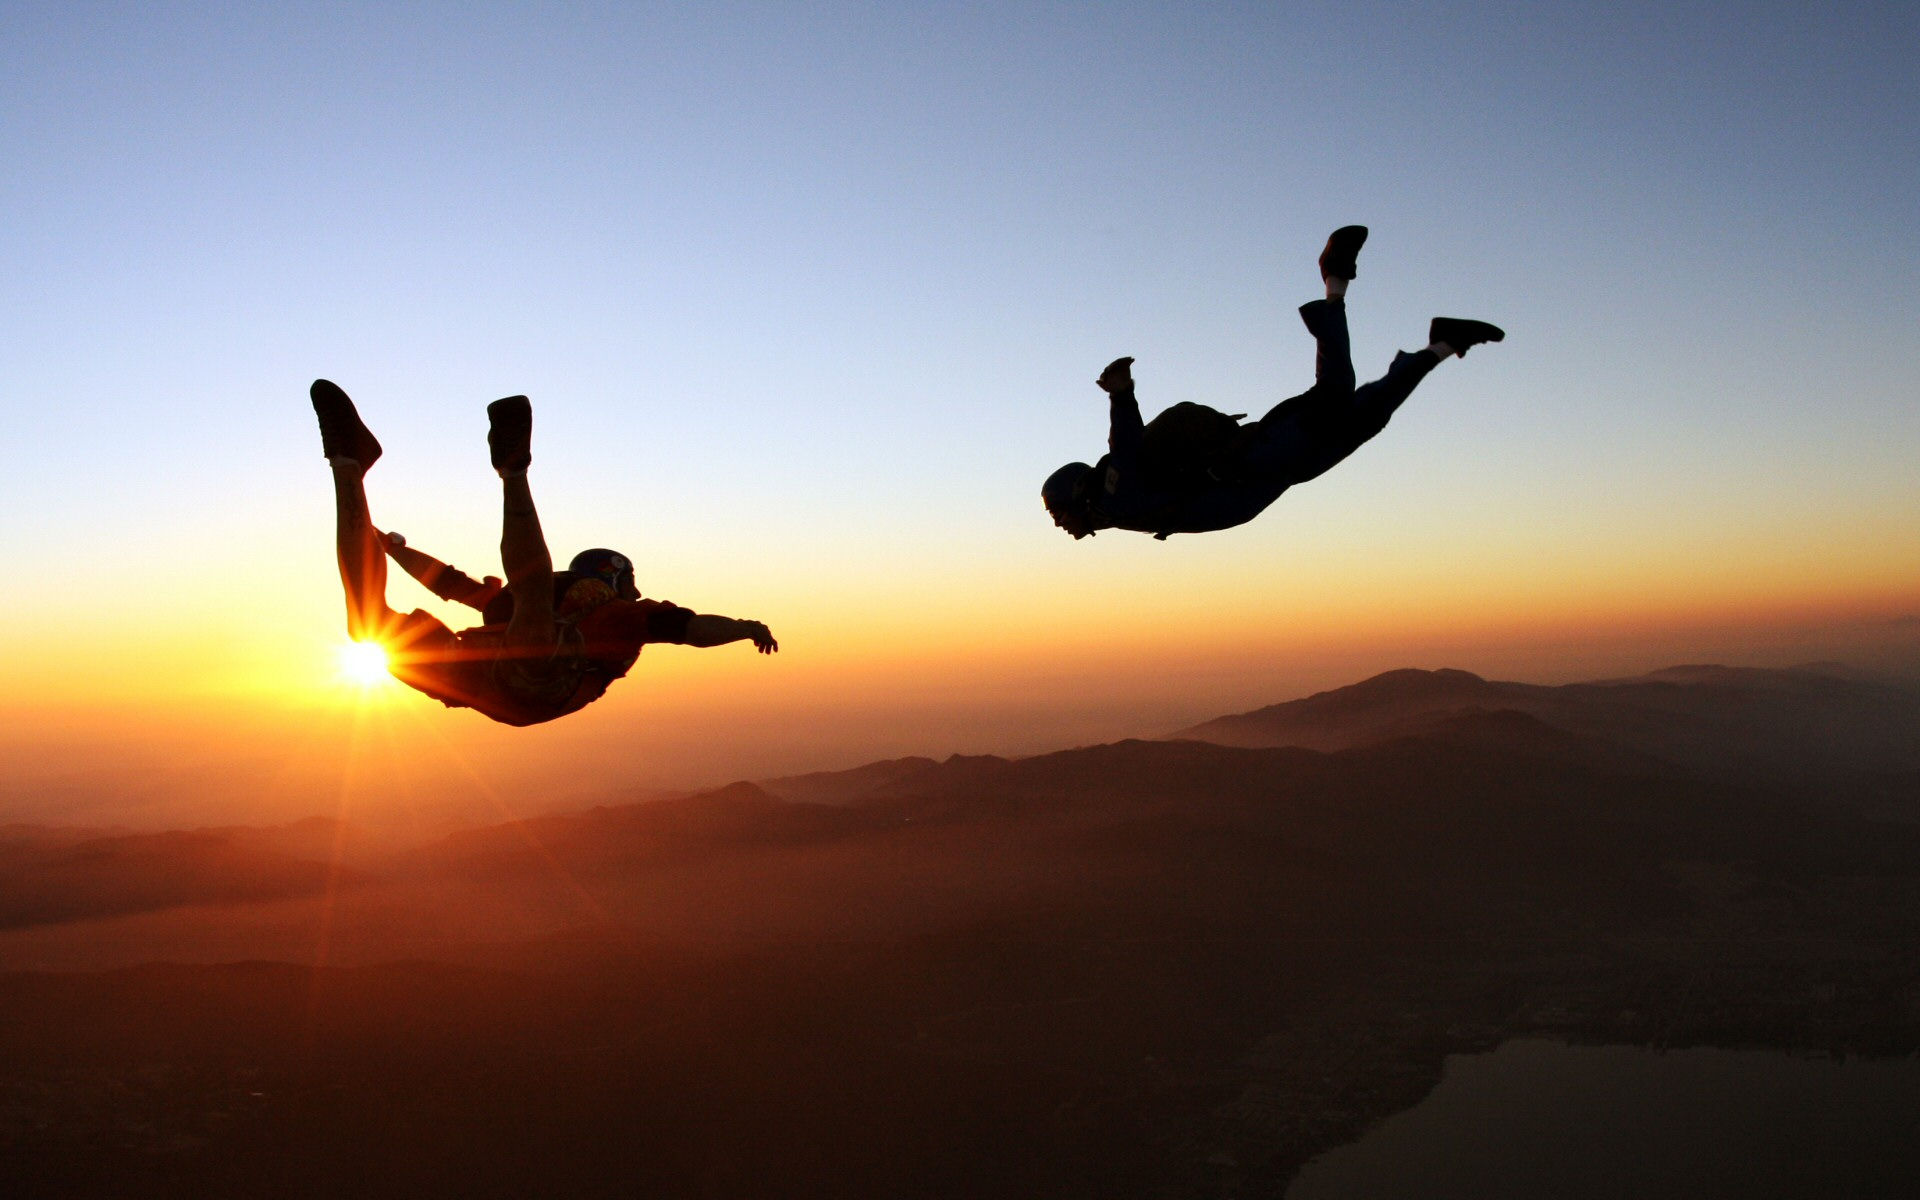 awesome-skydive-wallpaper-15788-16471-hd-wallpapers